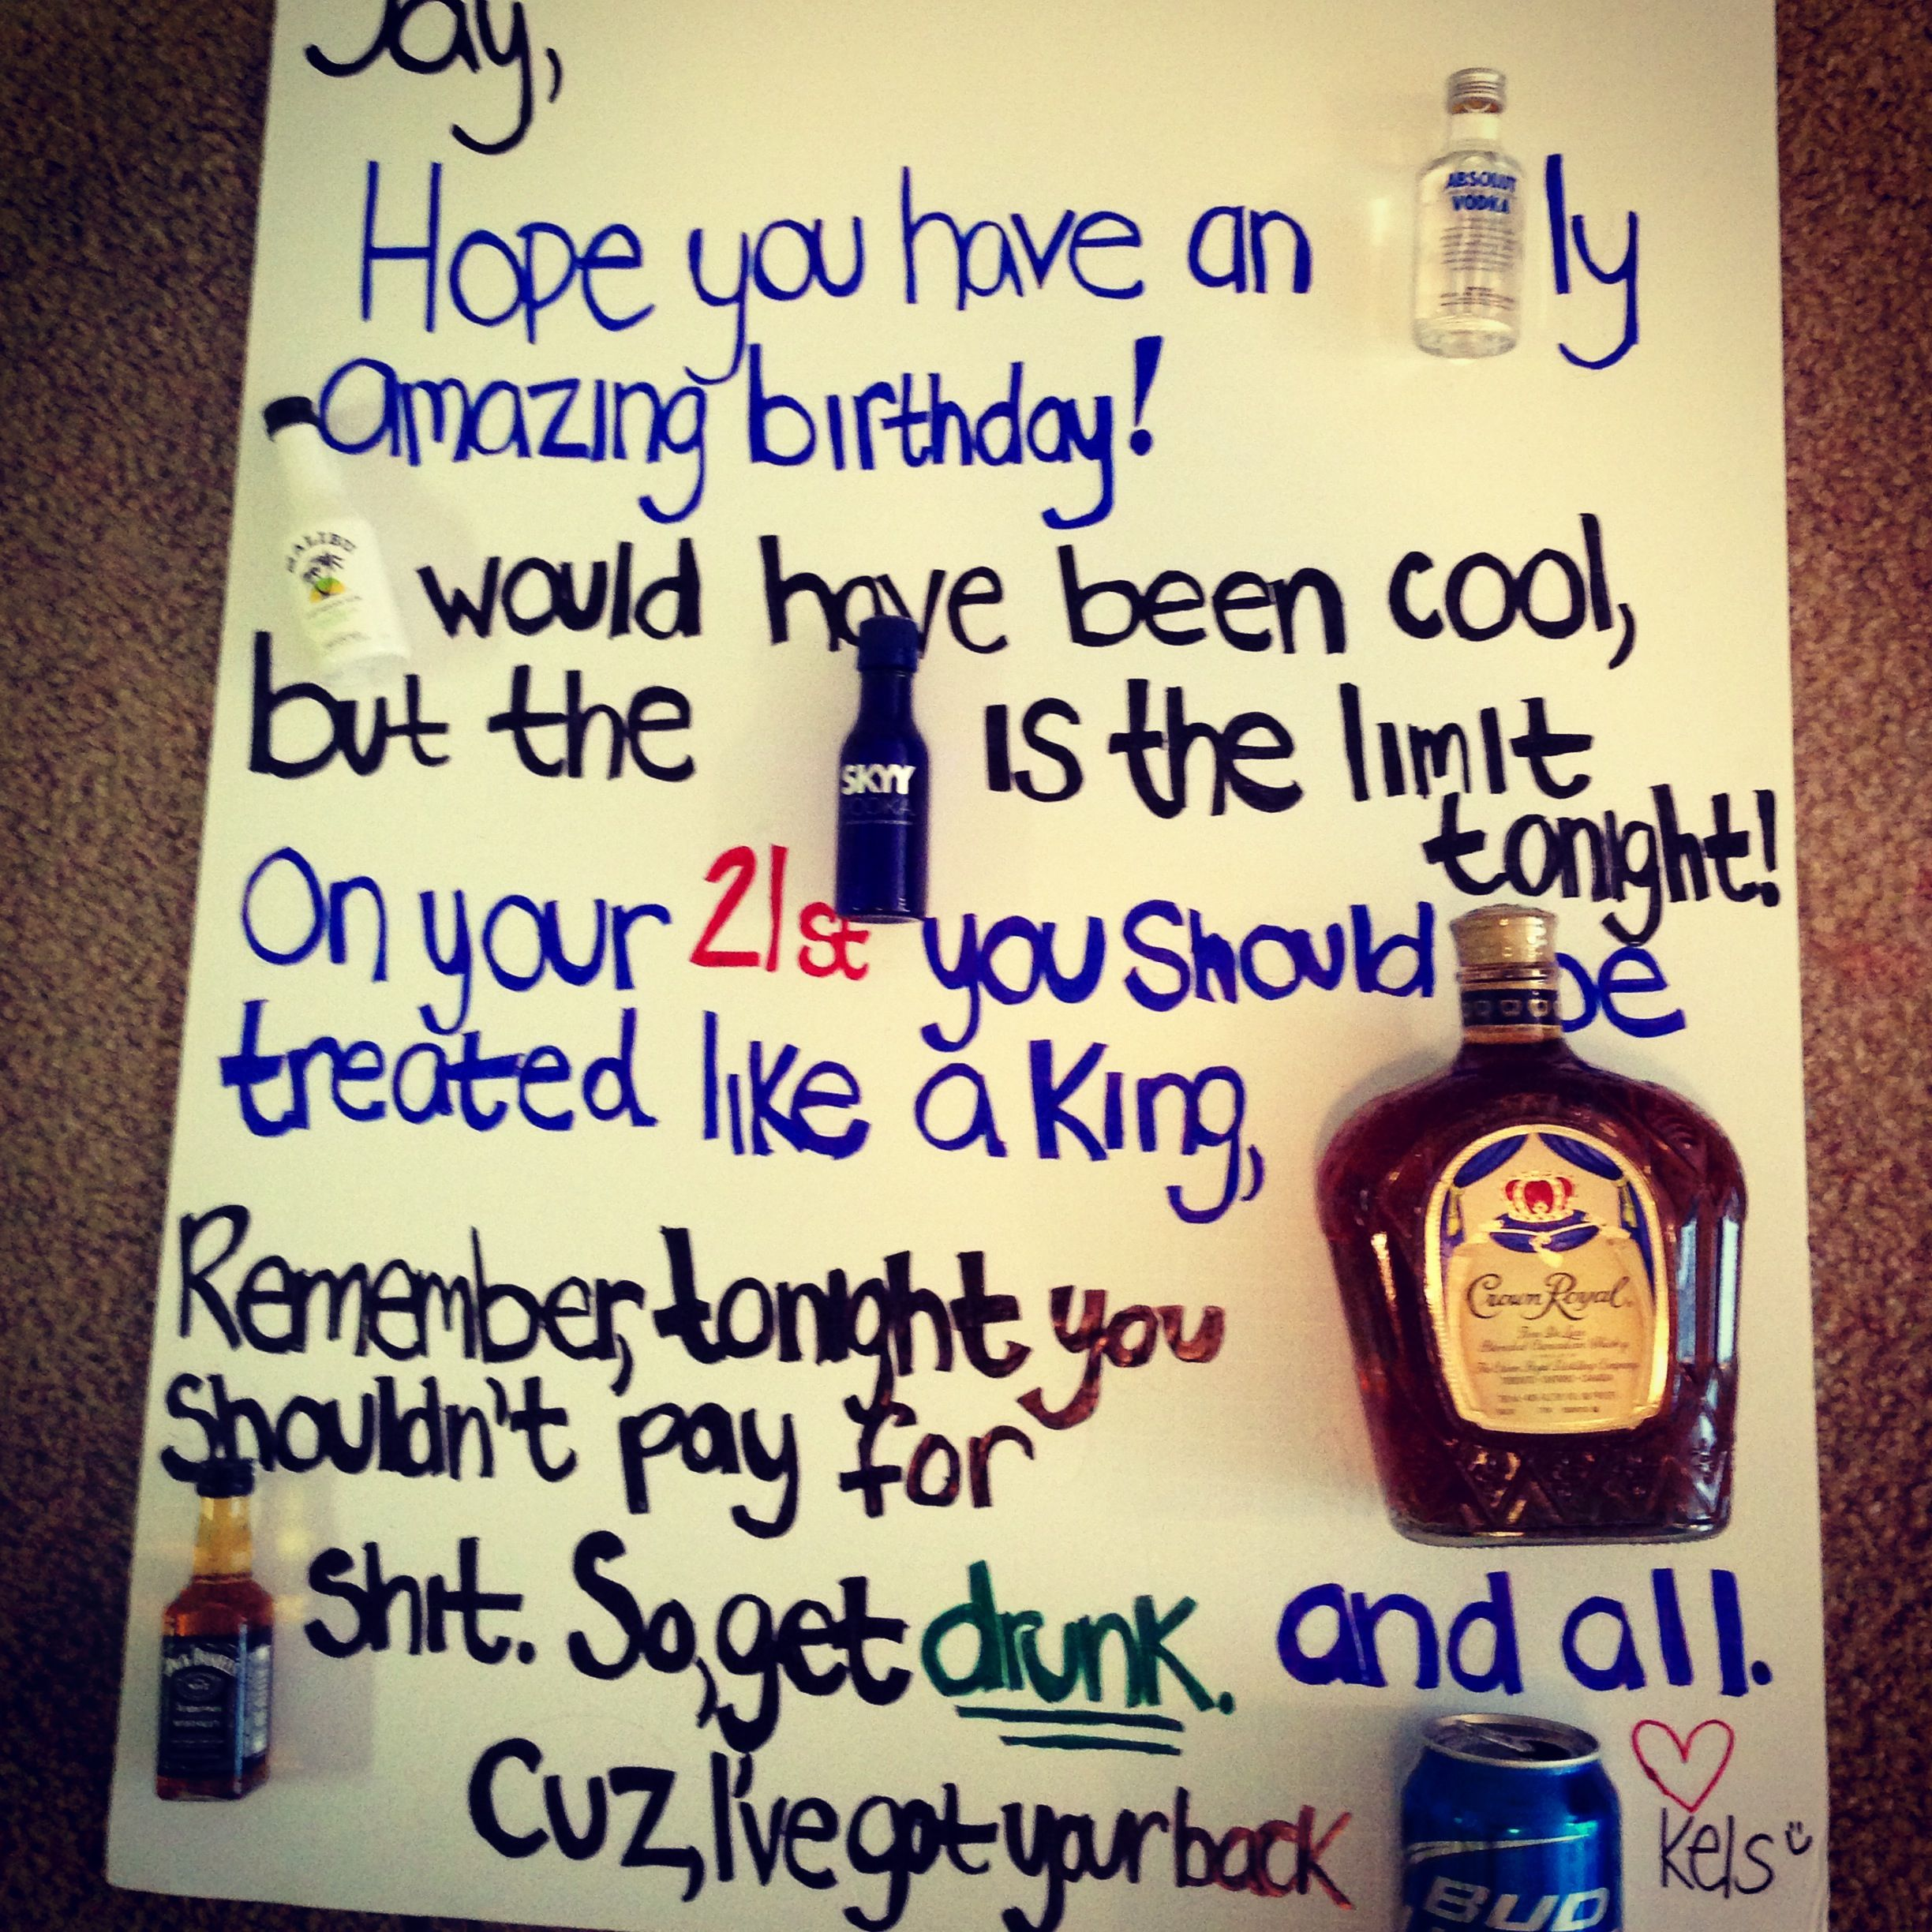 21st Birthday Present Hope You Have An ABSOLUTly Amazing MALIBU Would Been Cool But The SKYY Is Limit Tonight On Your